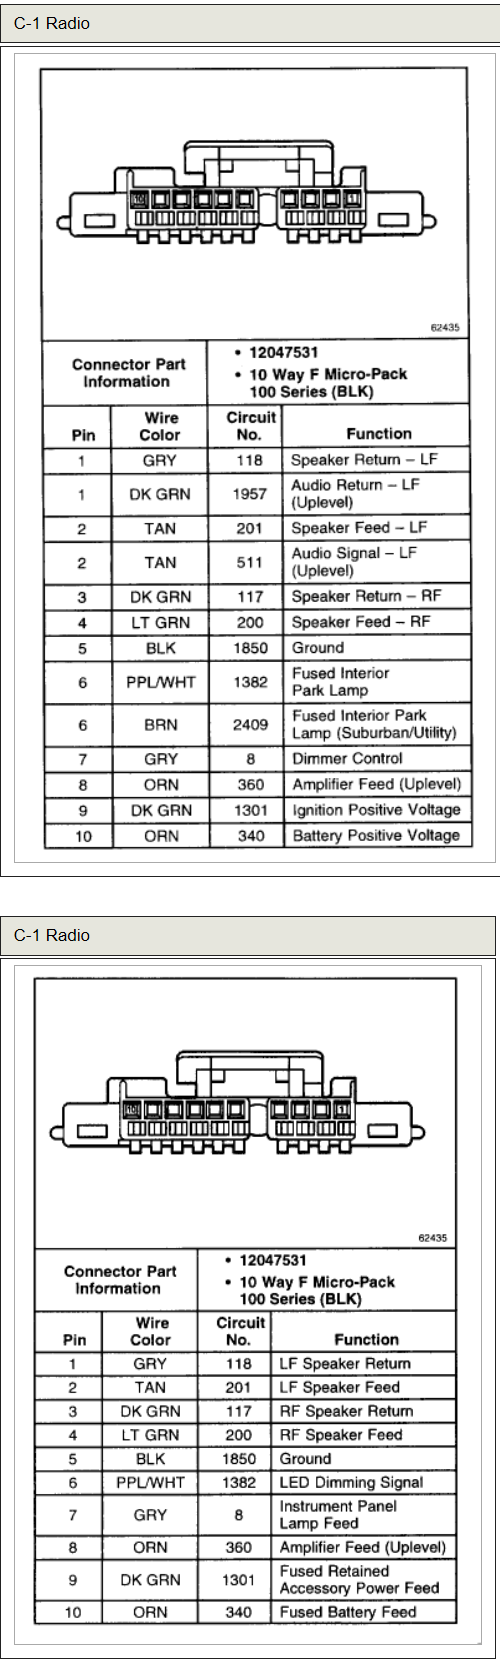 chevrolet car radio stereo audio wiring diagram autoradio connector rh tehnomagazin com 2002 Suburban Radio Wiring Diagram 2002 chevrolet tahoe radio wiring diagram